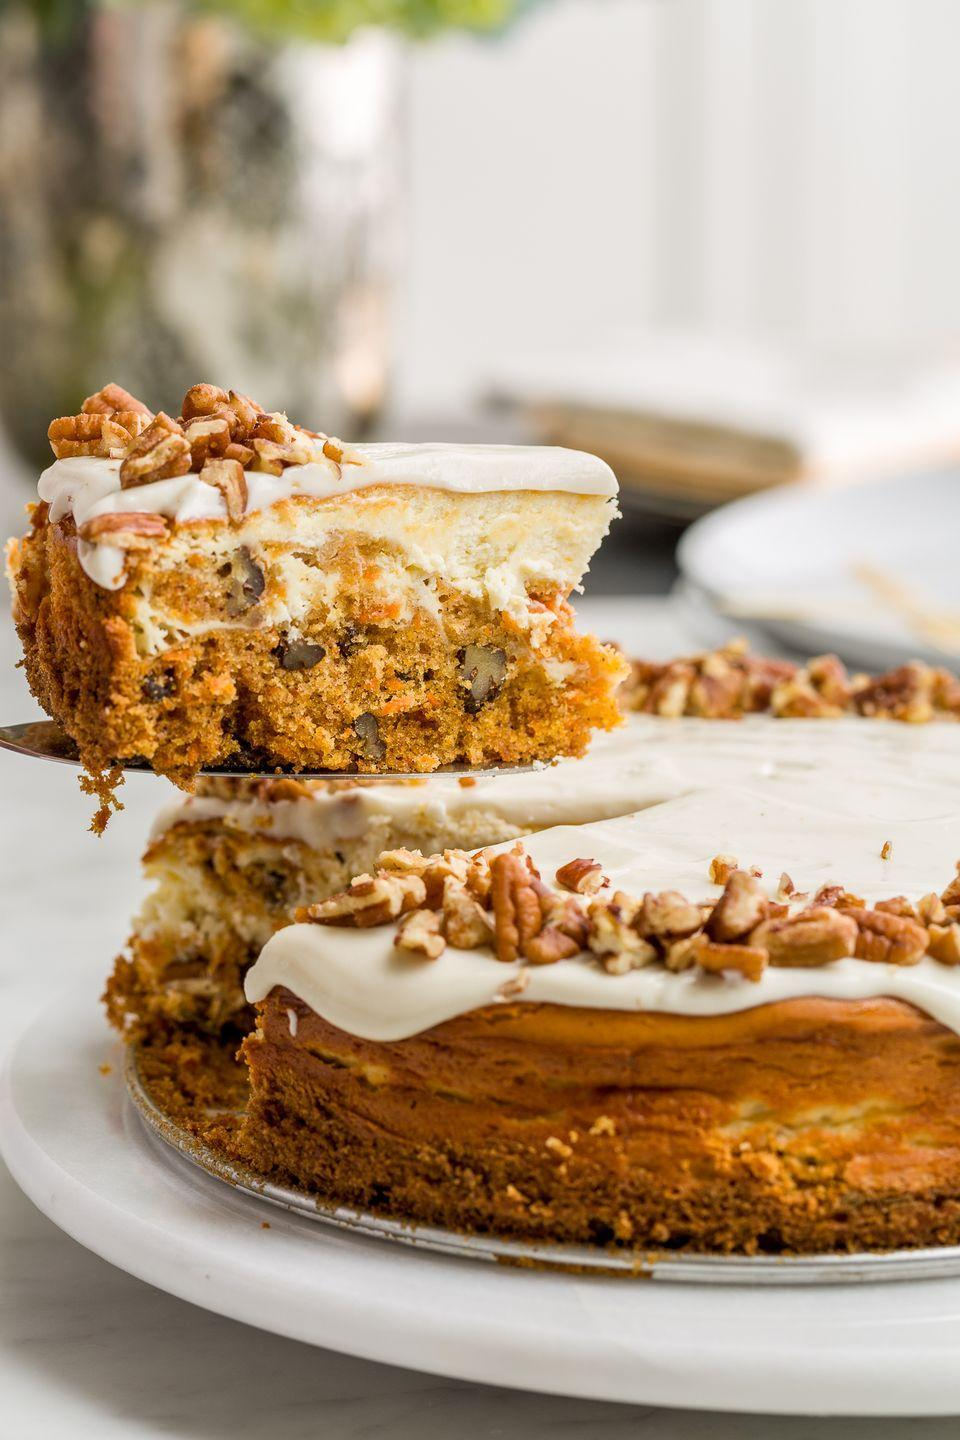 """<p>Because the cream cheese frosting wasn't enough.</p><p>Get the recipe from <a href=""""https://www.delish.com/cooking/recipe-ideas/recipes/a46468/carrot-cake-cheesecake-recipe/"""" rel=""""nofollow noopener"""" target=""""_blank"""" data-ylk=""""slk:Delish"""" class=""""link rapid-noclick-resp"""">Delish</a>.</p>"""